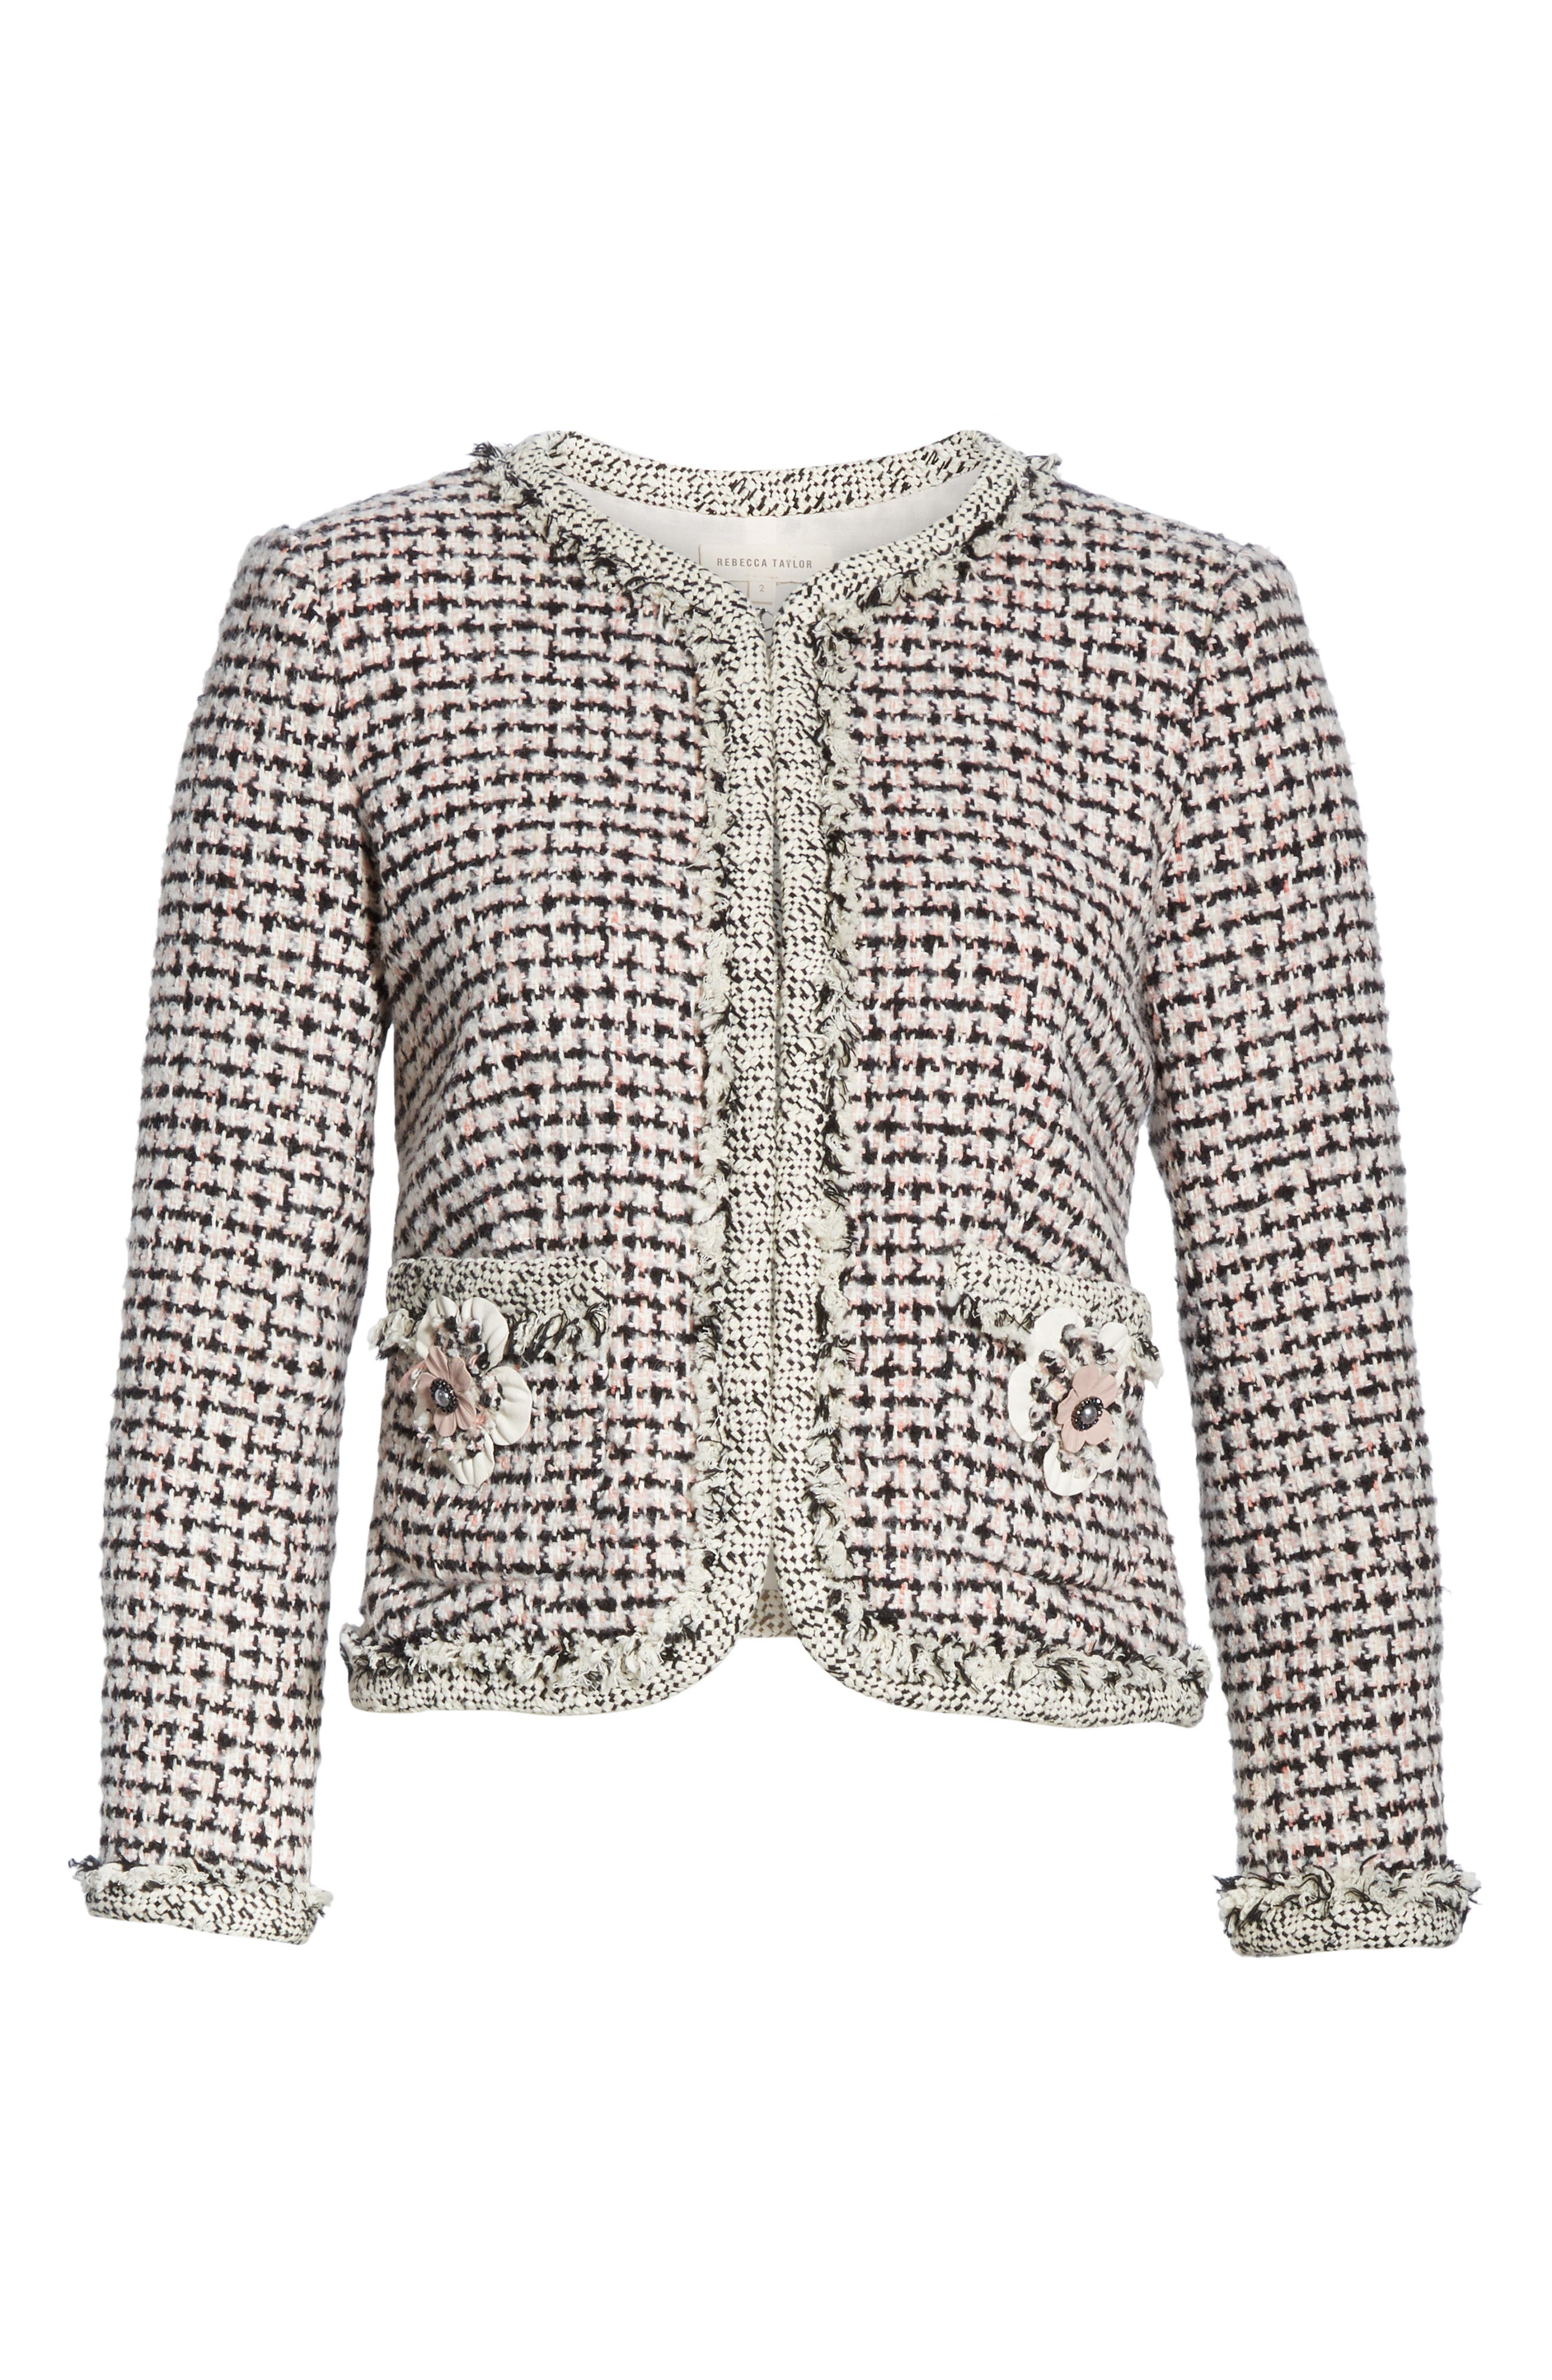 REBECCA TAYLOR, Houndstooth Tweed Jacket, Alternate thumbnail 6, color, BLACK/ PINK COMBO